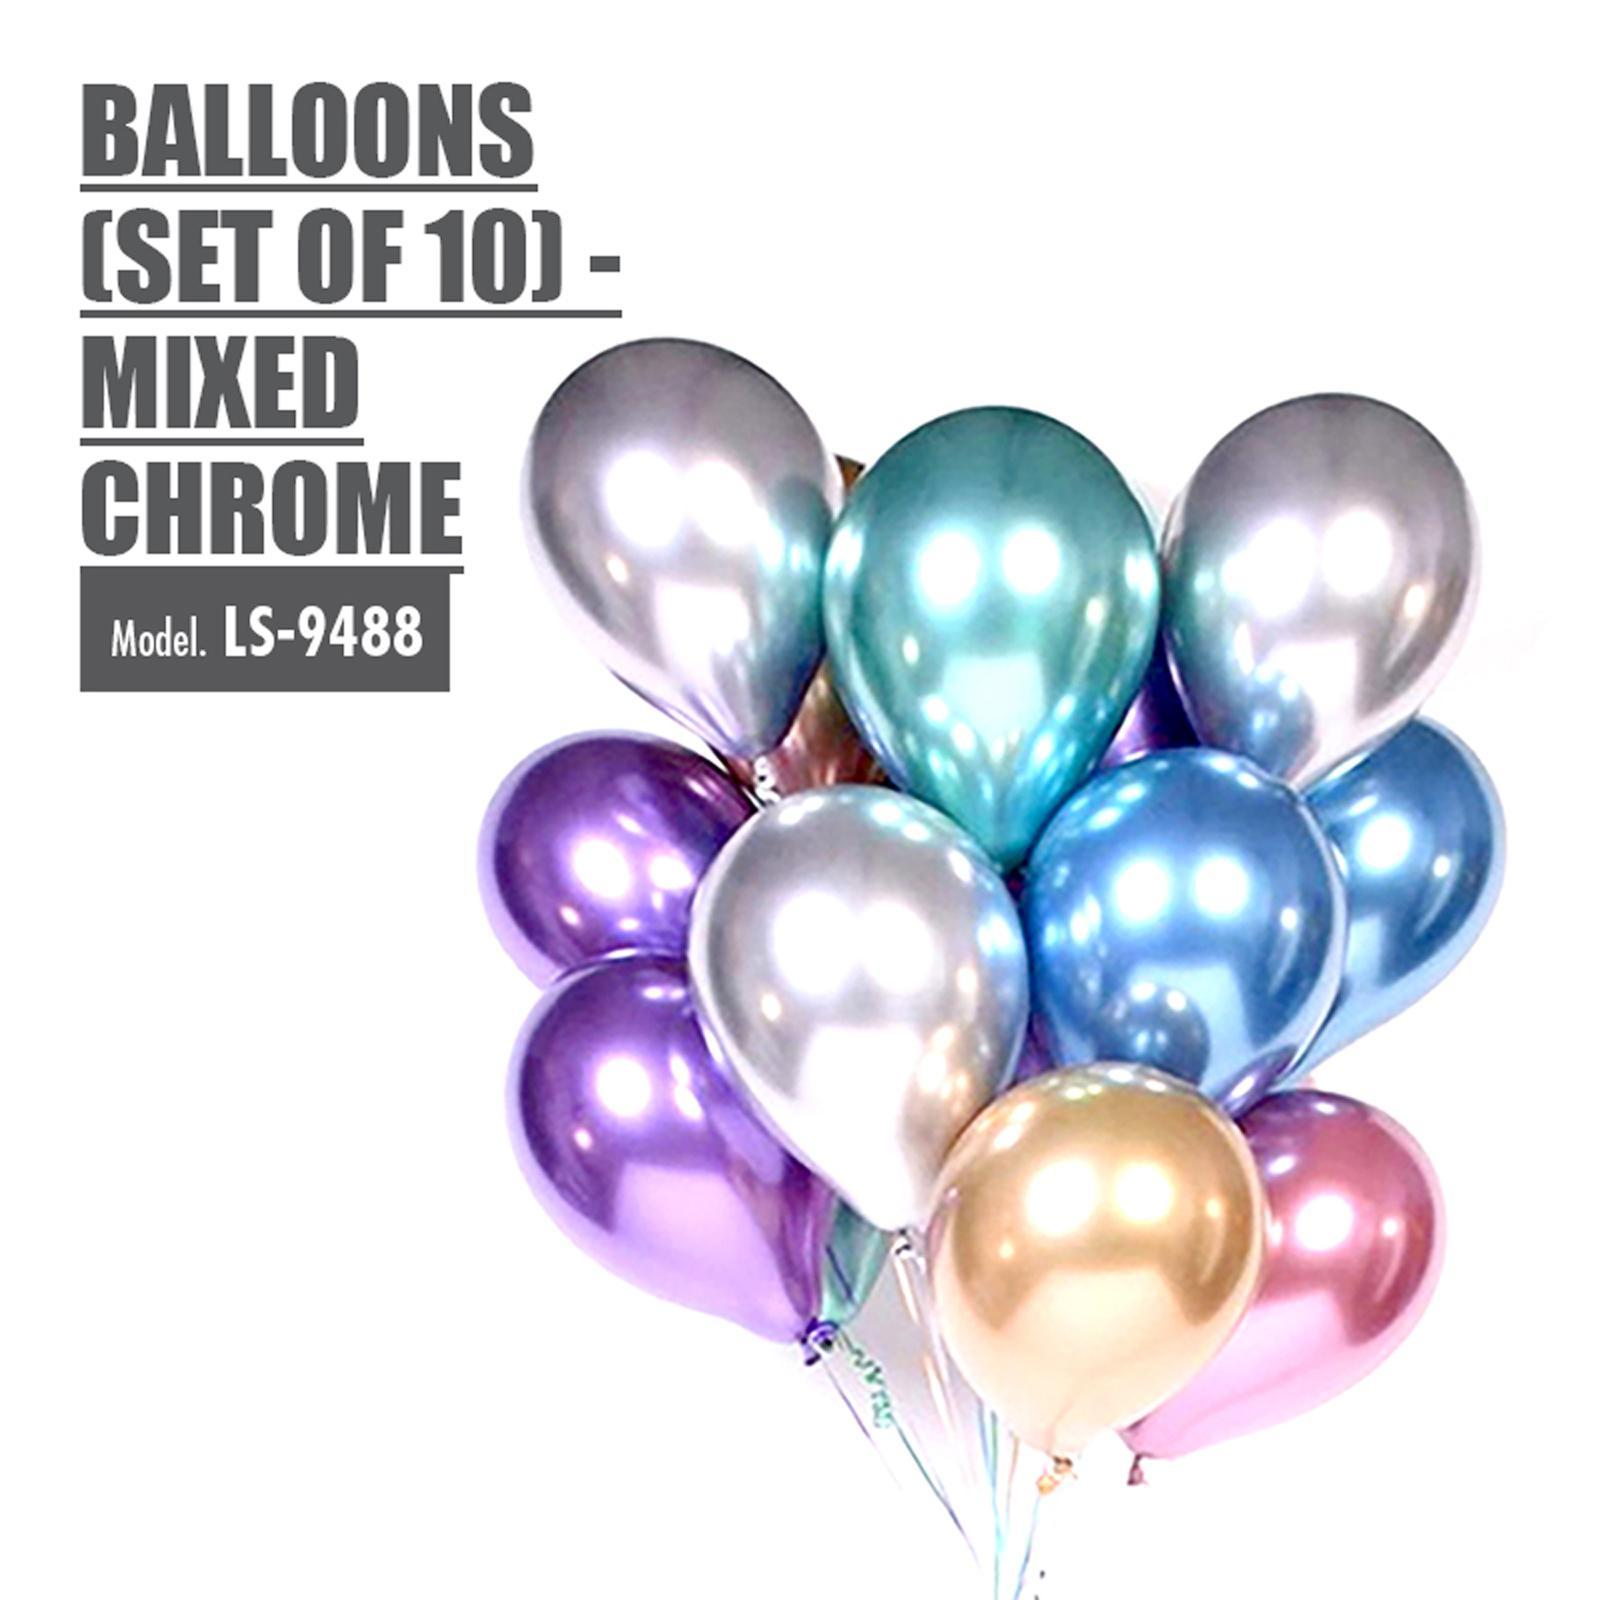 HOUZE Balloons (Set Of 10) - Mixed Chrome